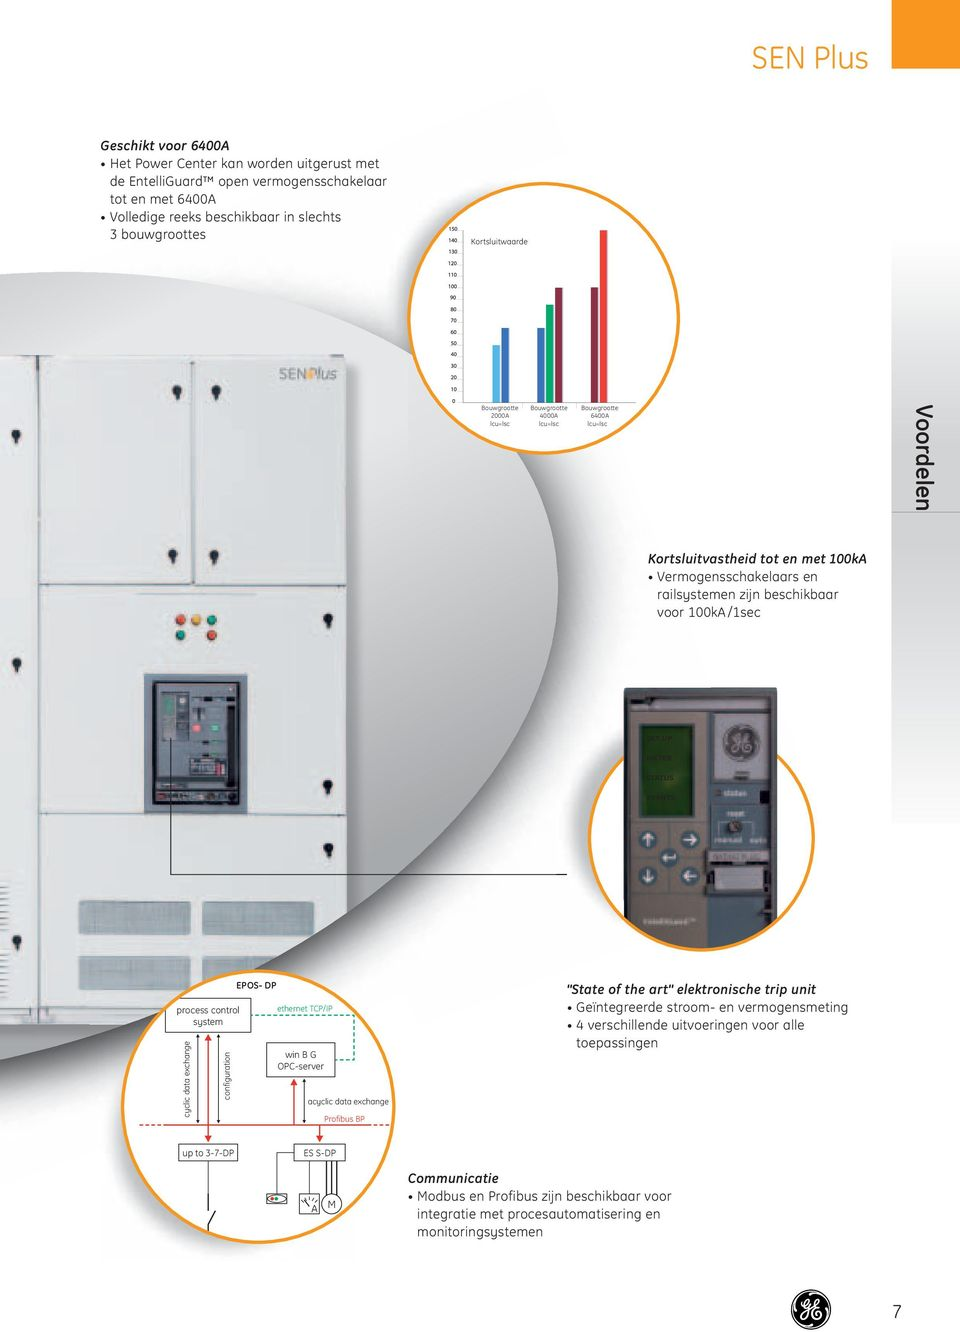 "UP METER STATUS EVENTS process control system cyclic data exchange configuration EPOS- DP ethernet TCP/IP win B G OPC-server acyclic data exchange Profibus BP ""State of the art"" elektronische trip"